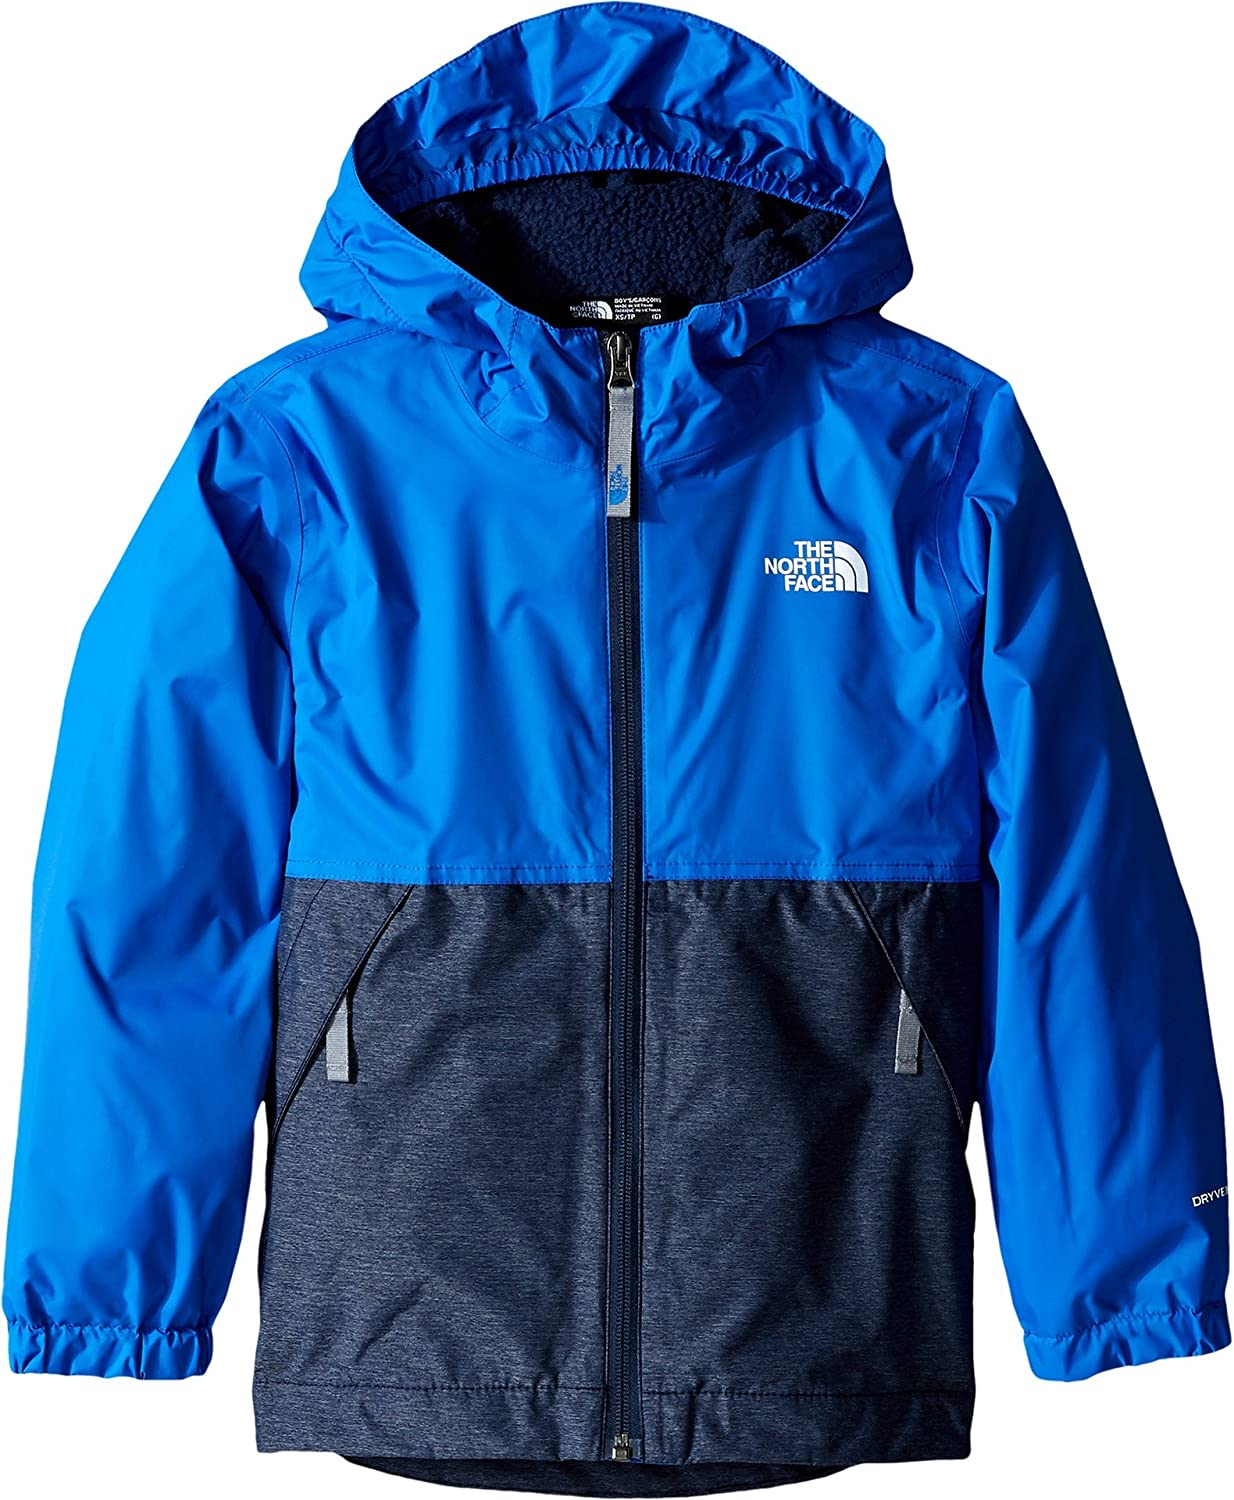 3830ec10a The North Face Warm Storm Jacket Boys' Jake Blue Small: Amazon.ca ...